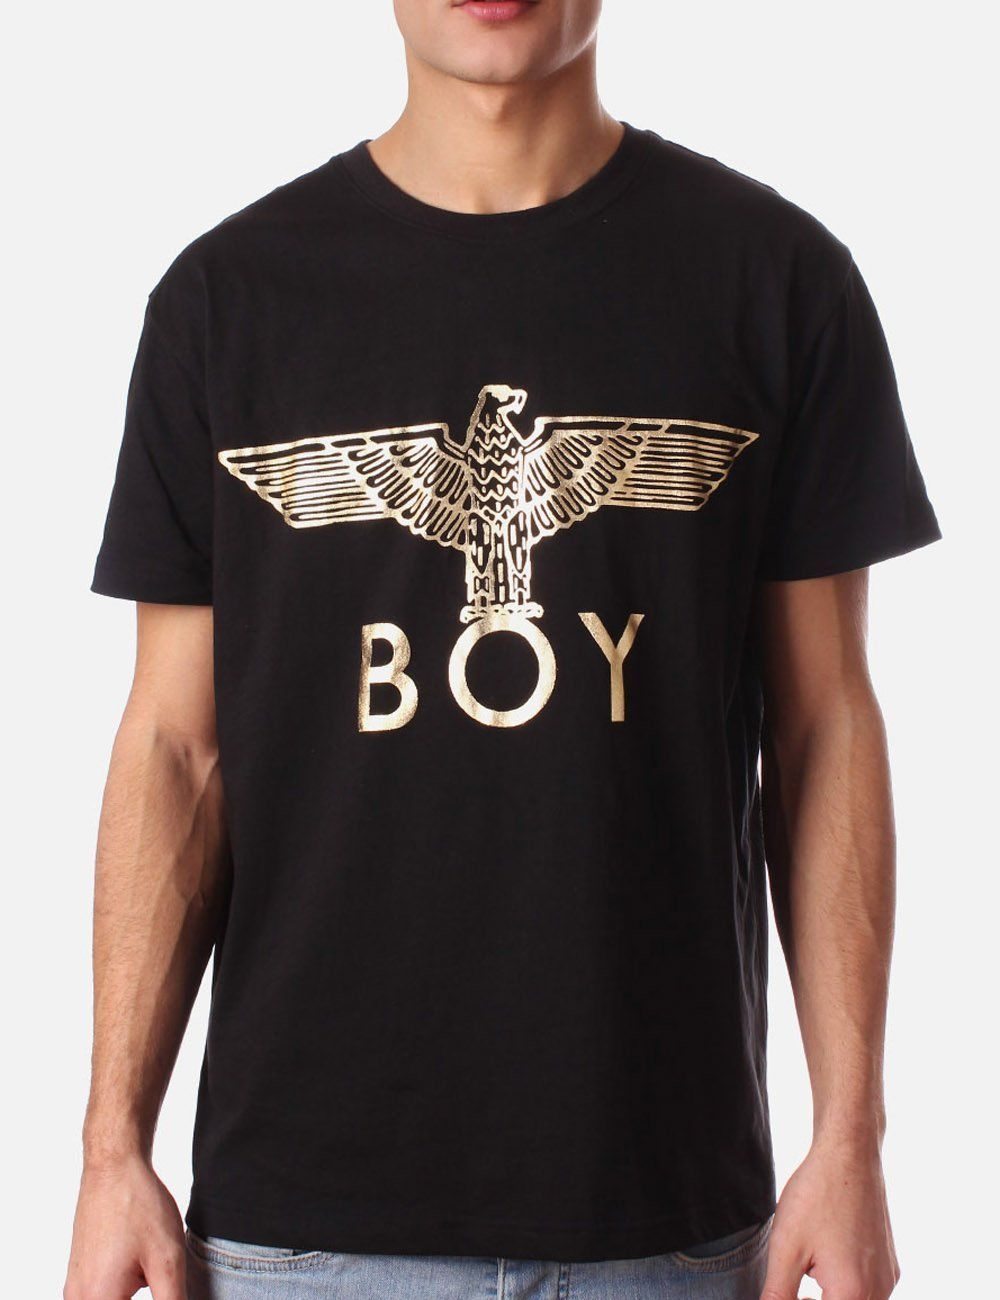 T shirt design hip hop - Aliexpress Com Buy High Quality Hip Hop Shirt Boy London T Shirt Boy S Short Sleeve Tee Eagle Design Men Shirt Gold Printing Tshirt 100 Cotton From